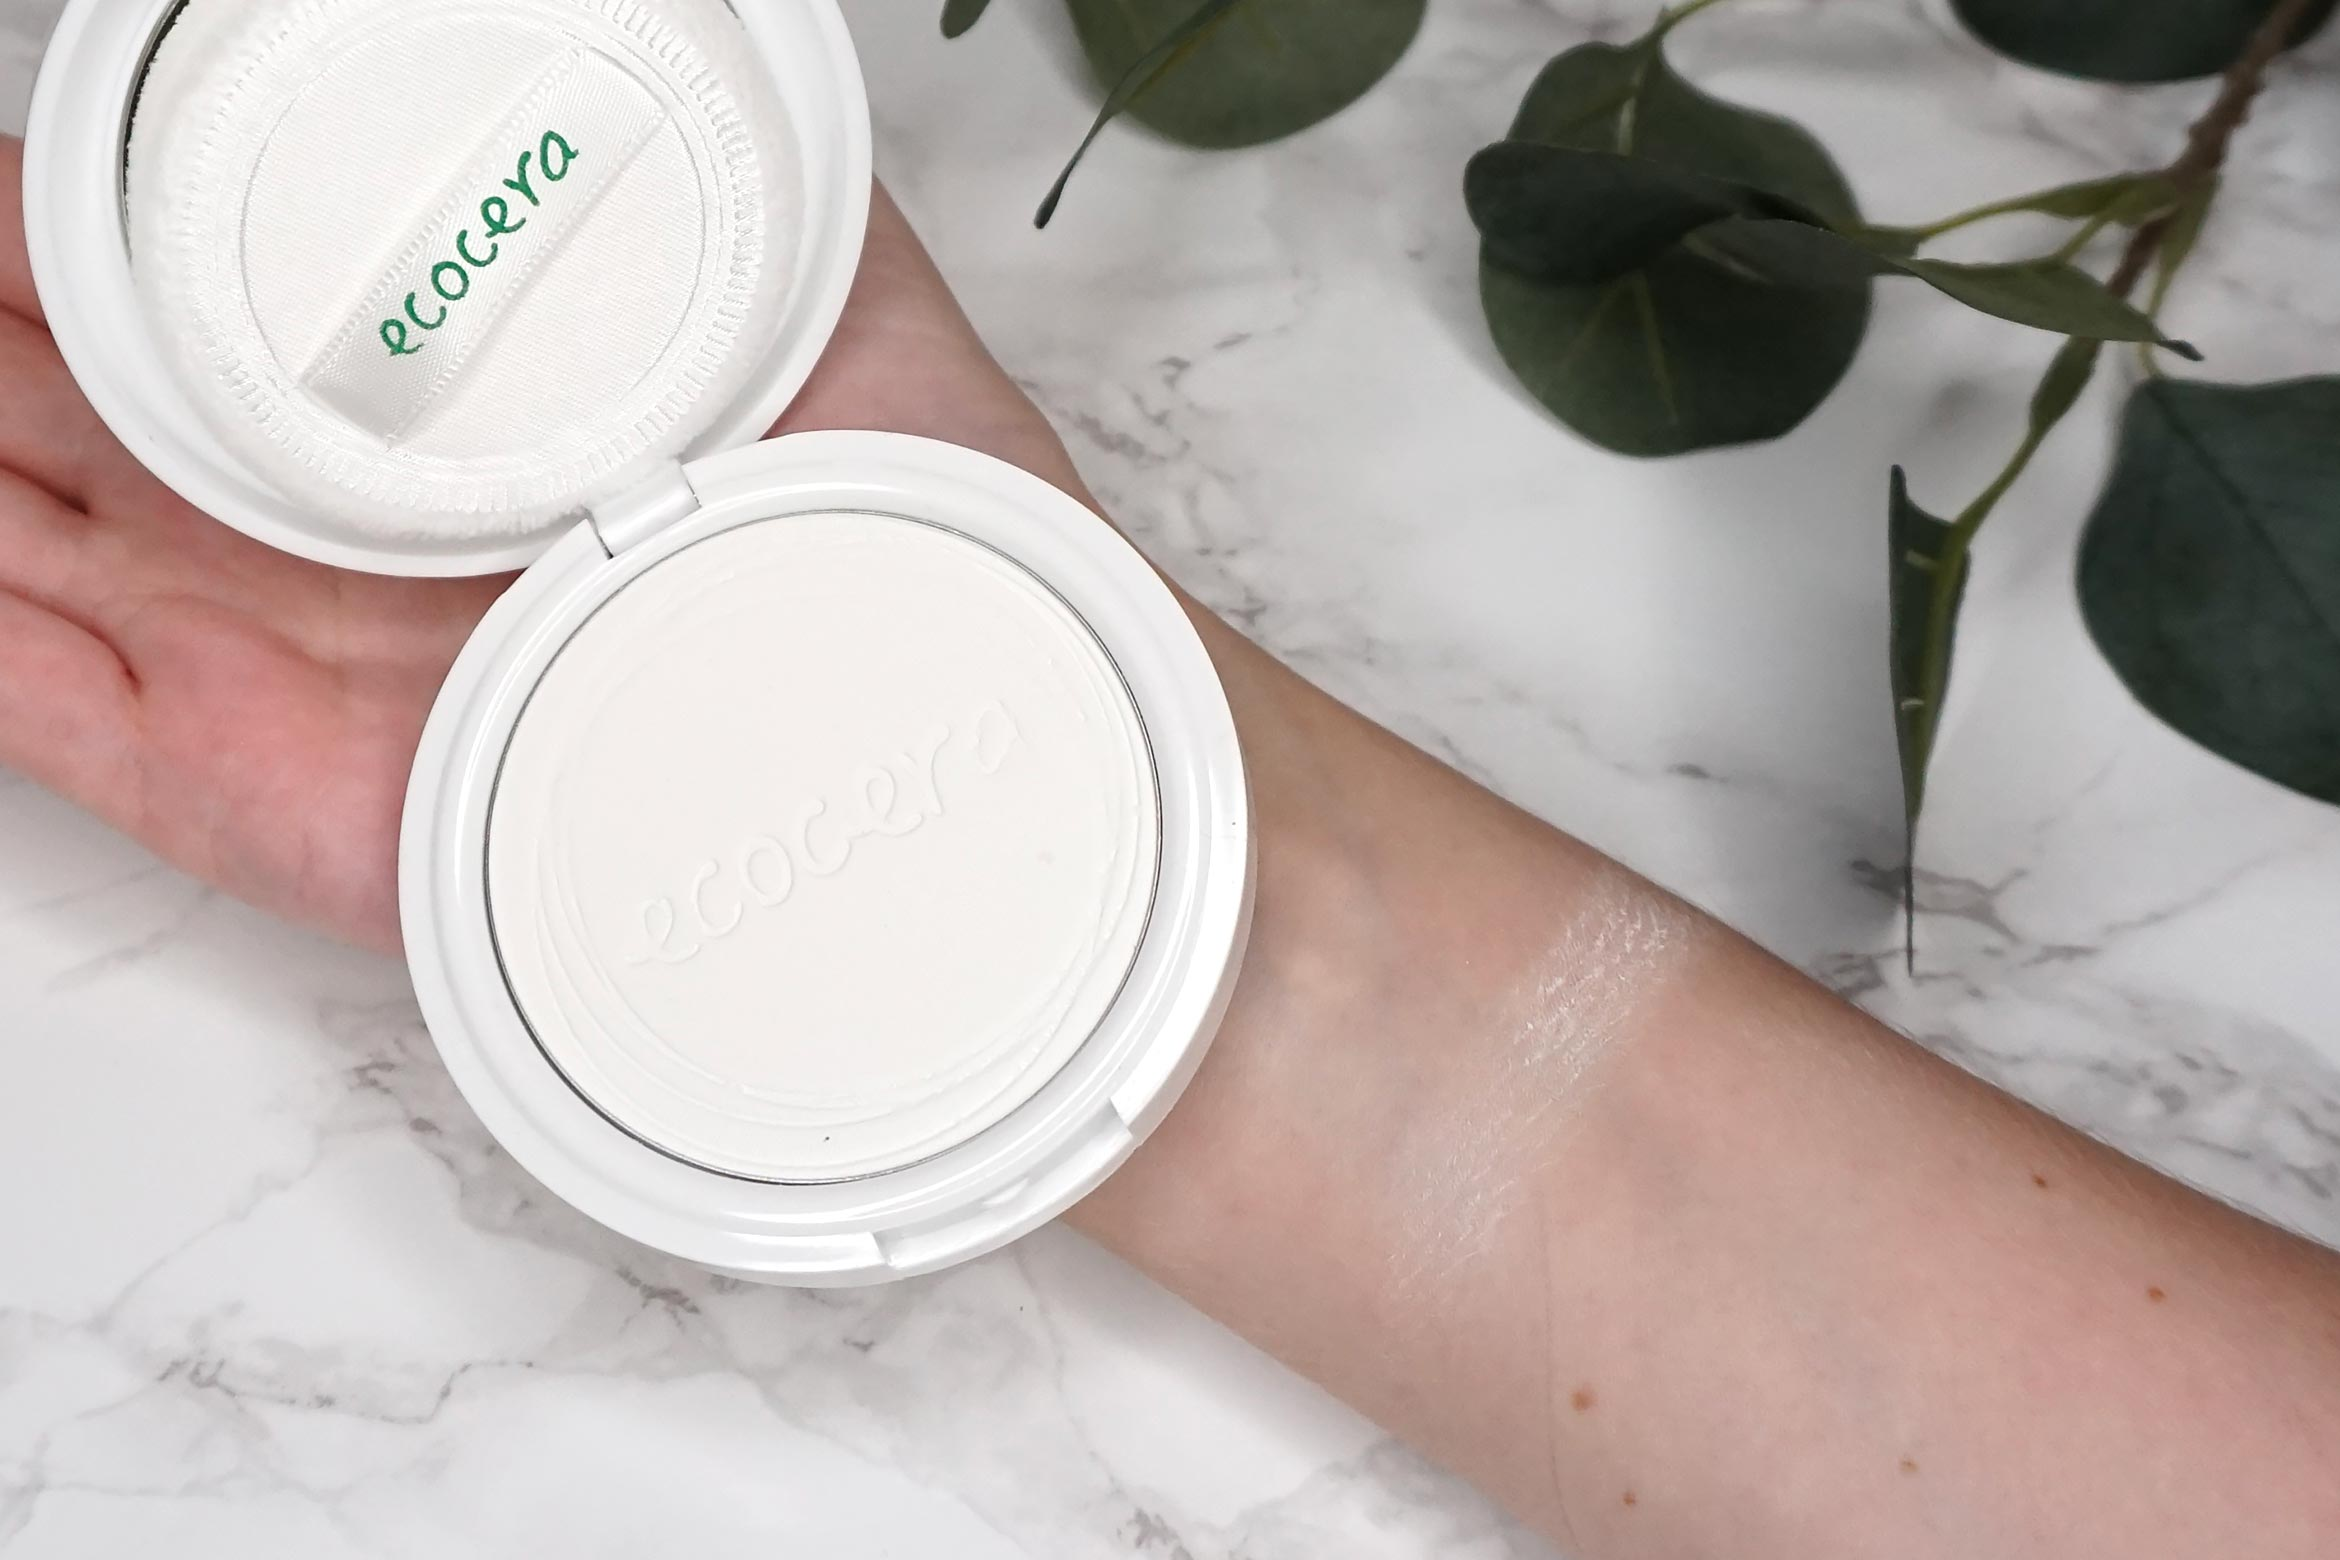 ecocera-rice-pressed-powder-swatch-review